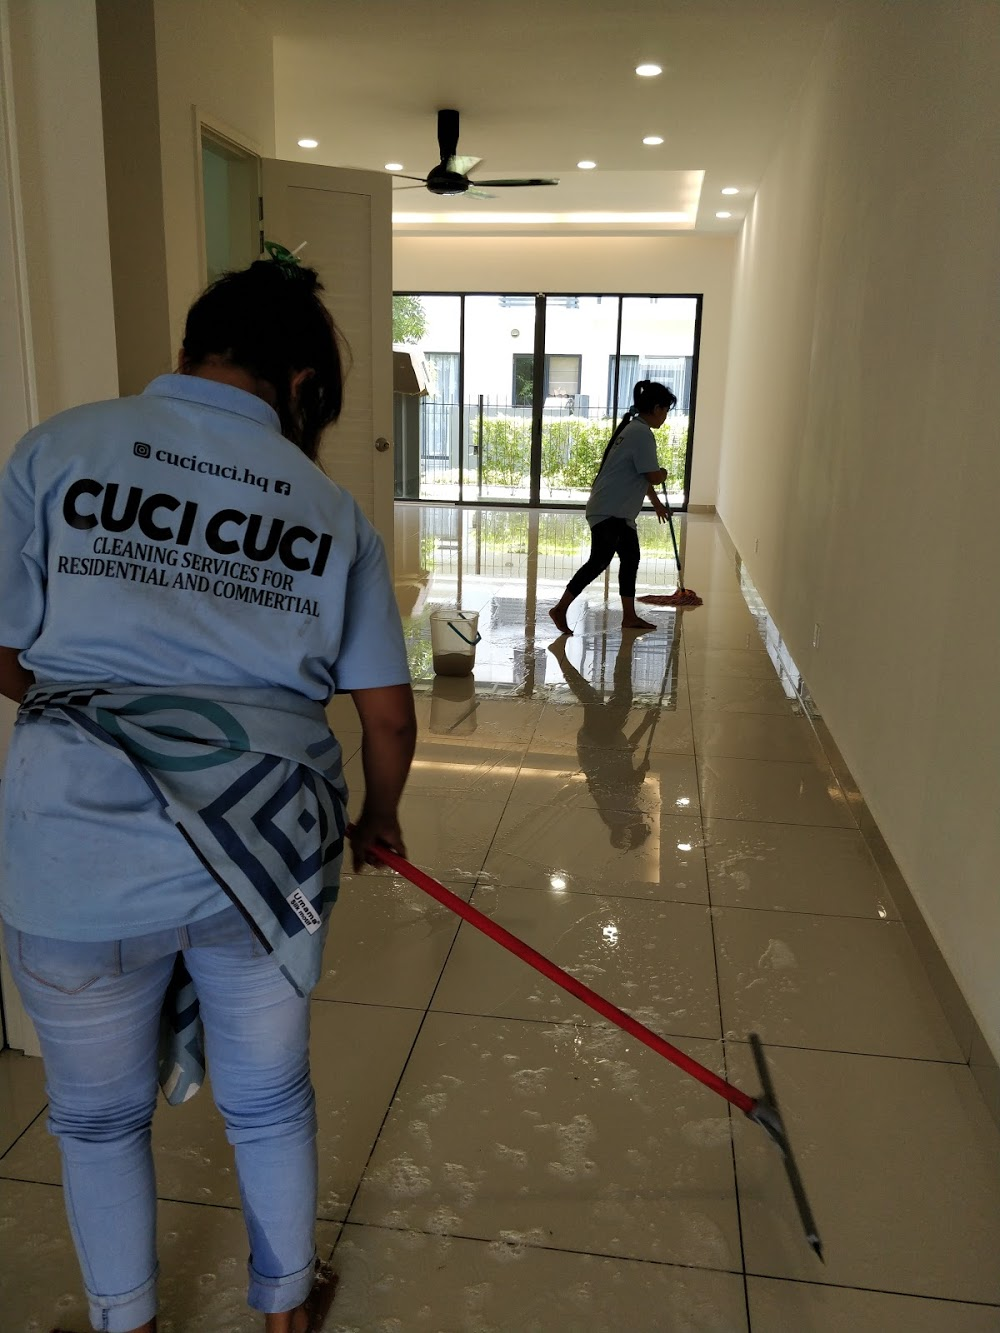 Cuci Cuci Cleaning Services